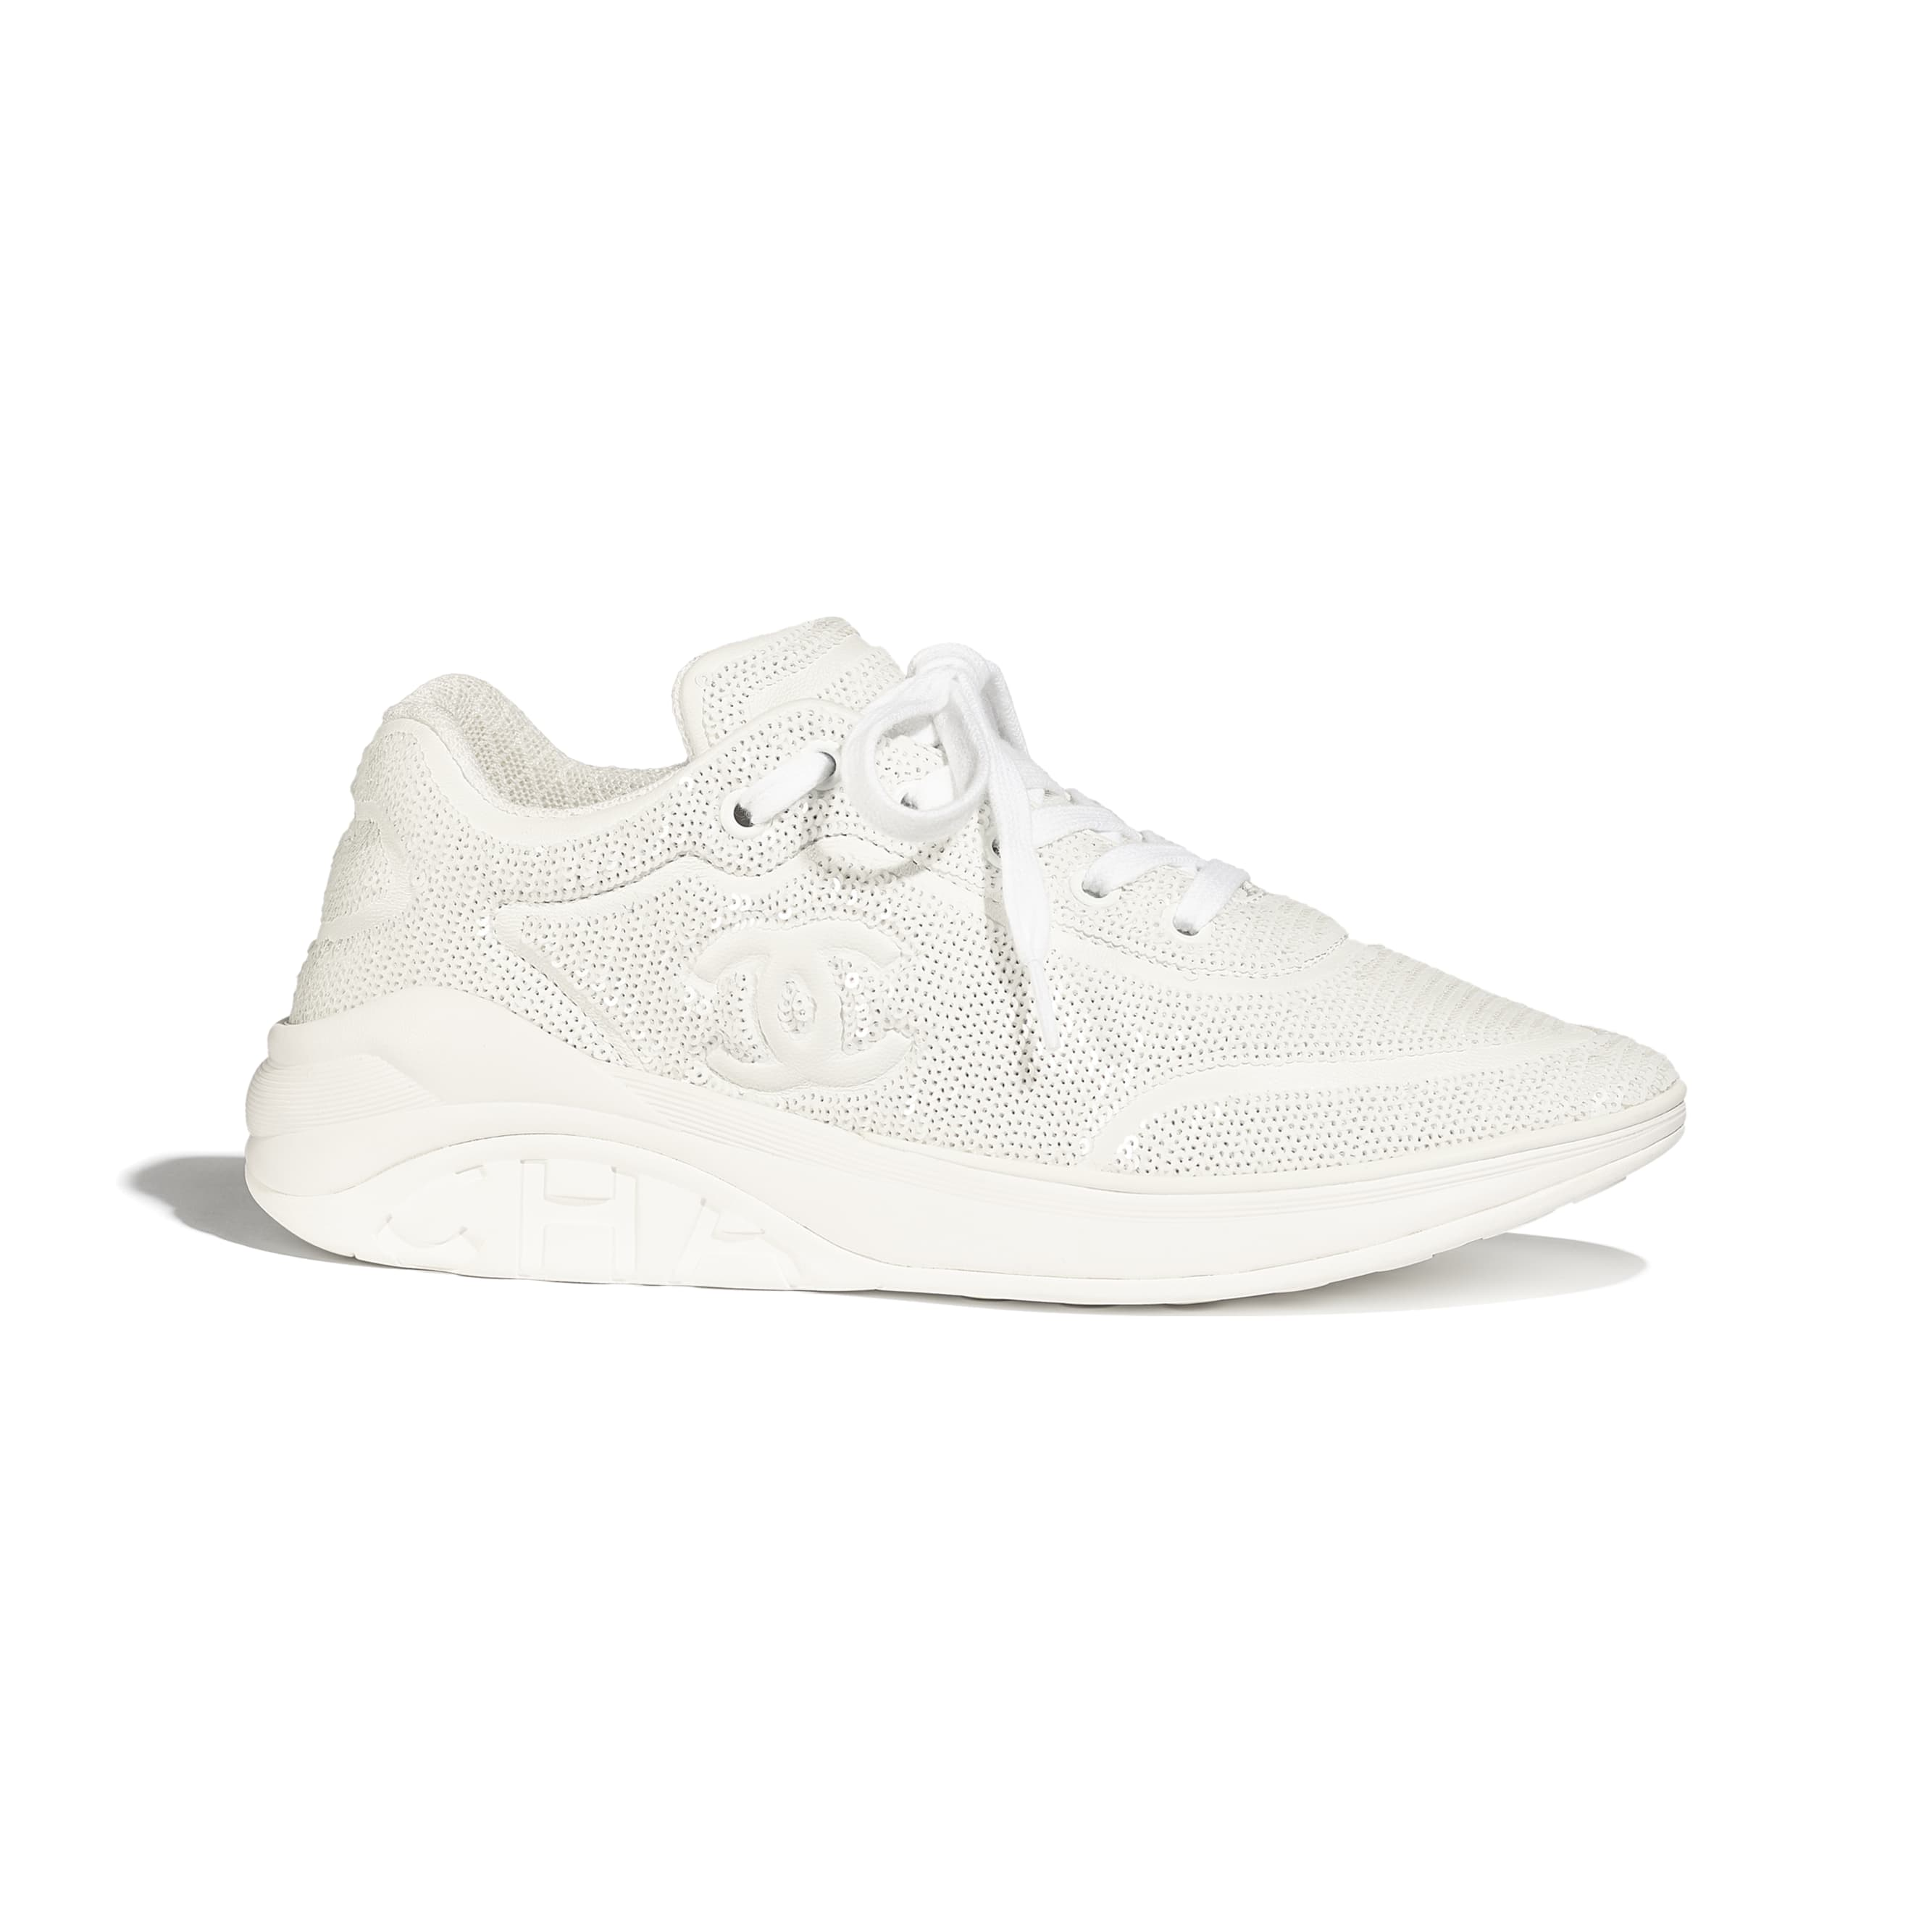 Trainers - White - Sequins - Default view - see standard sized version